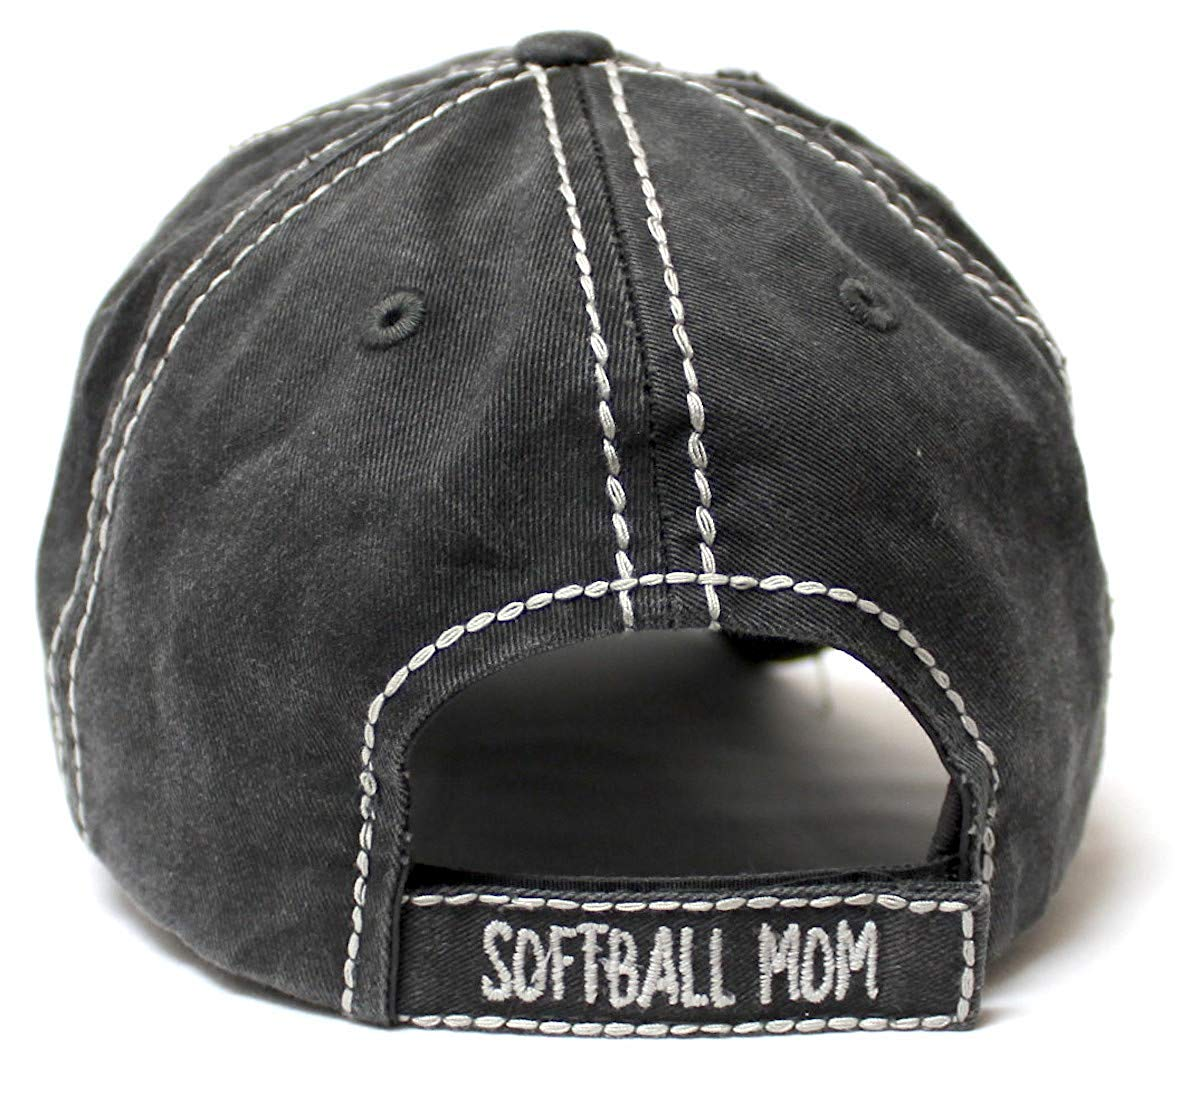 CAPS 'N VINTAGE Women's Softball Mom Baseball Cap Heart Softball Patch Embroidery, Black - Caps 'N Vintage